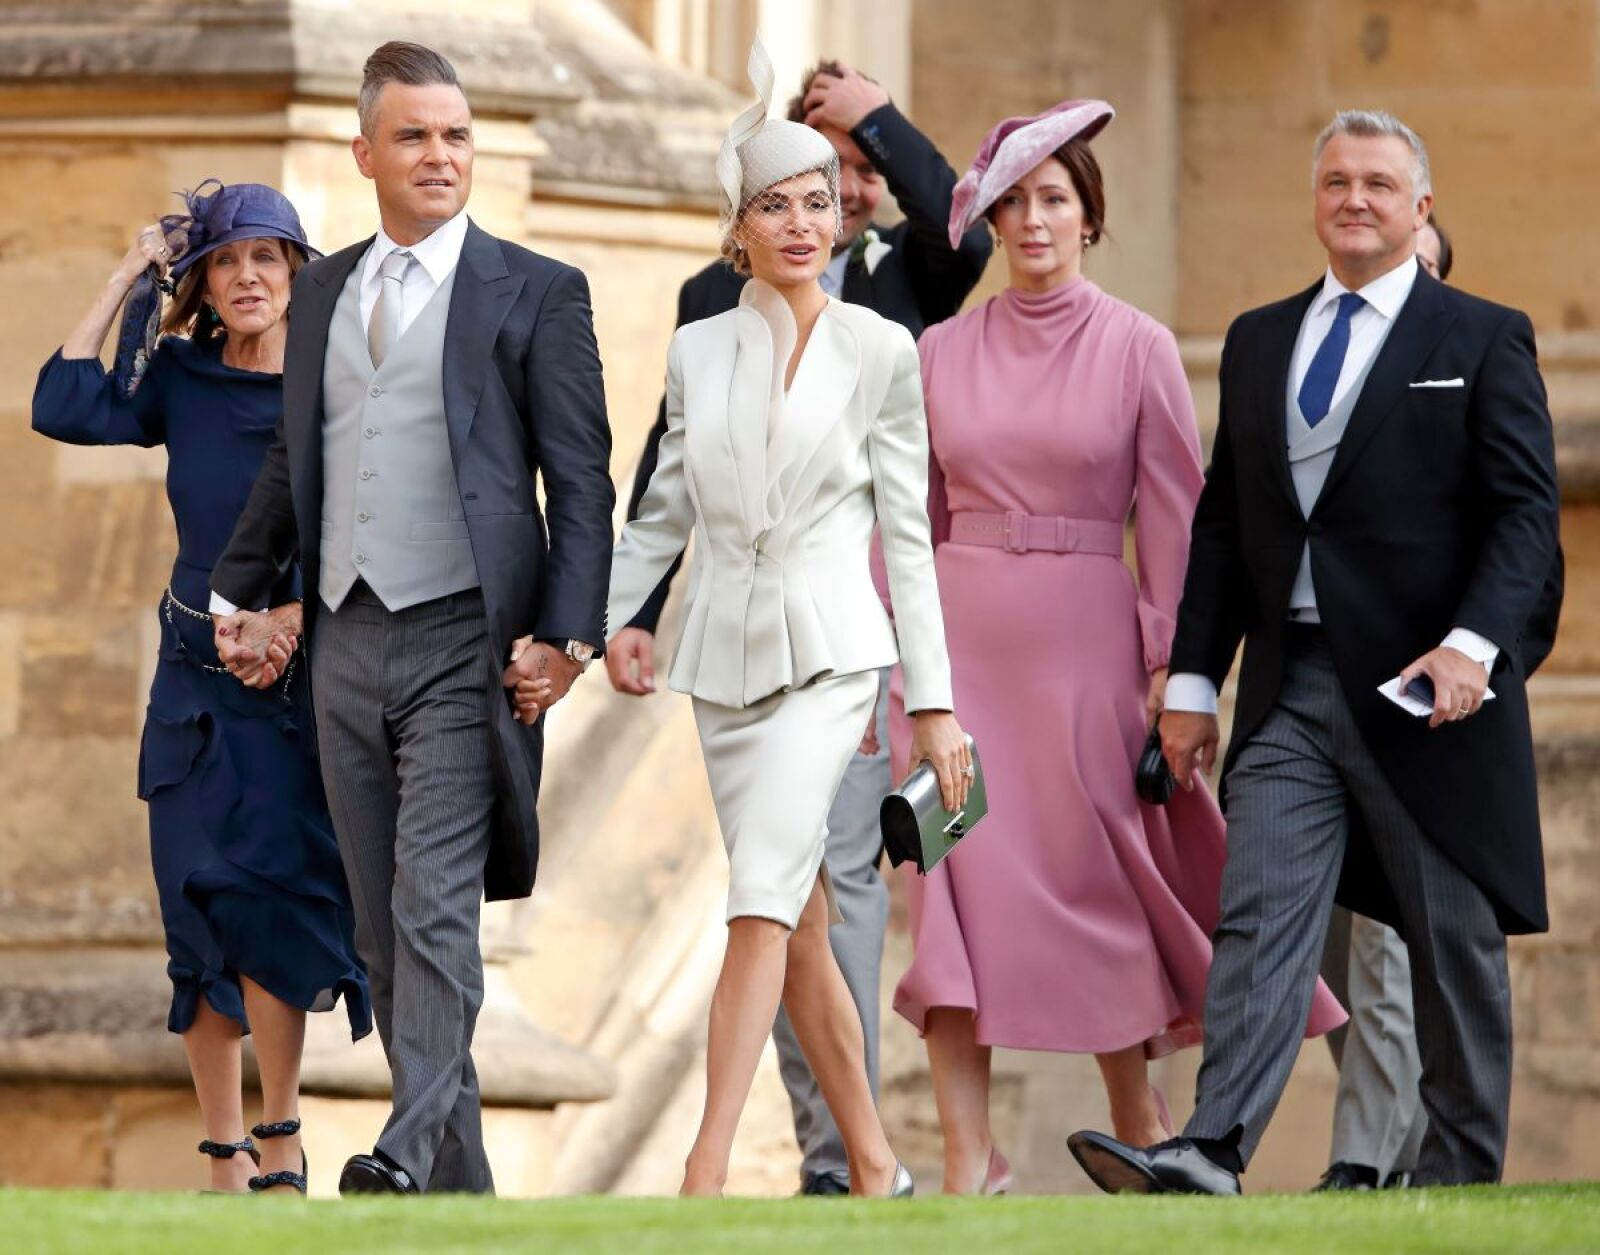 Gwen Field, Robbie Williams, Ayda Field, Zoe de Givenchy and Olivier de Givenchy.jpg